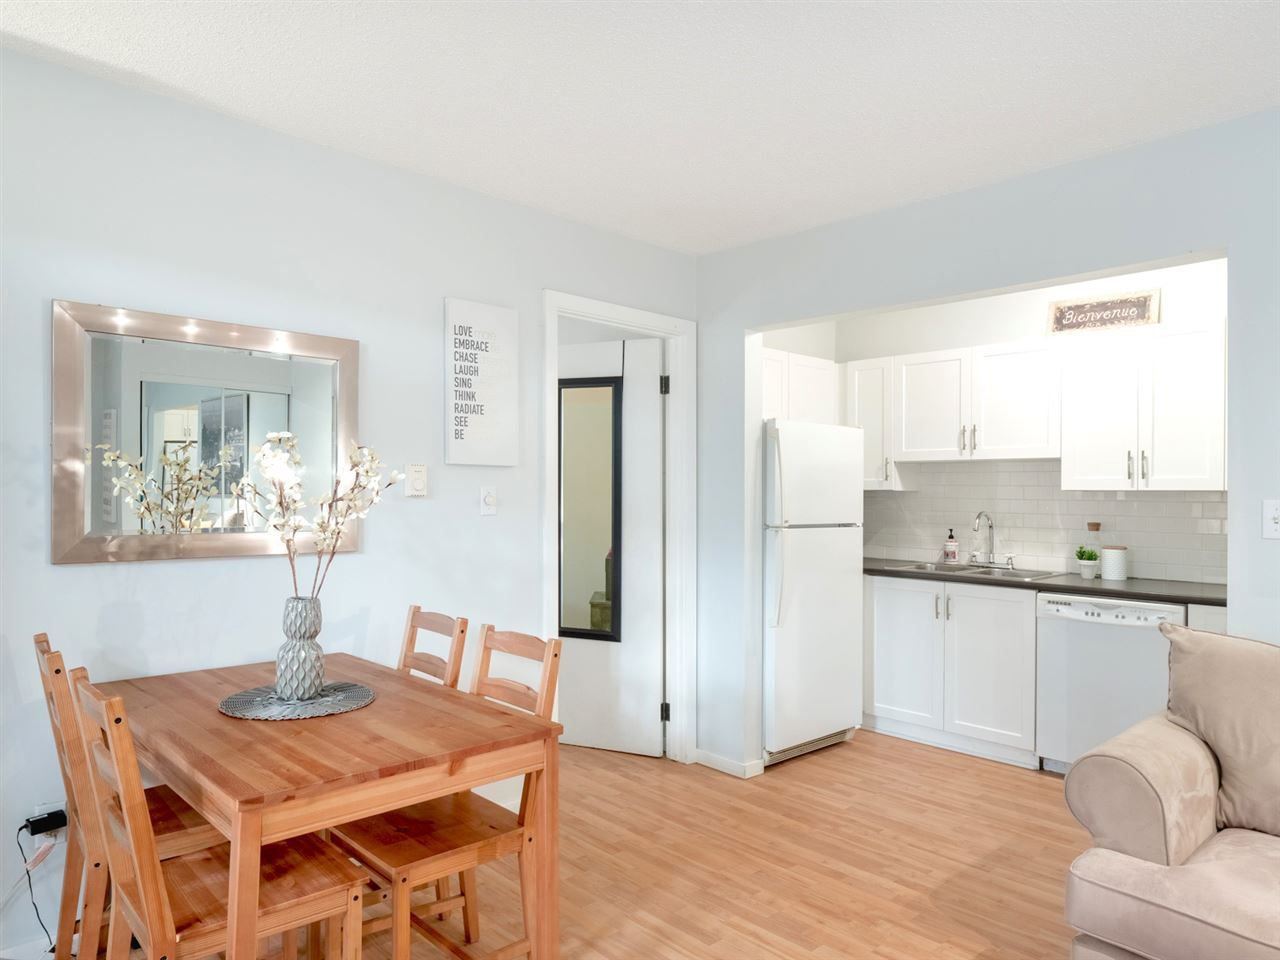 Photo 5: Photos: 101 8645 OSLER Street in Vancouver: Marpole Condo for sale (Vancouver West)  : MLS®# R2311470